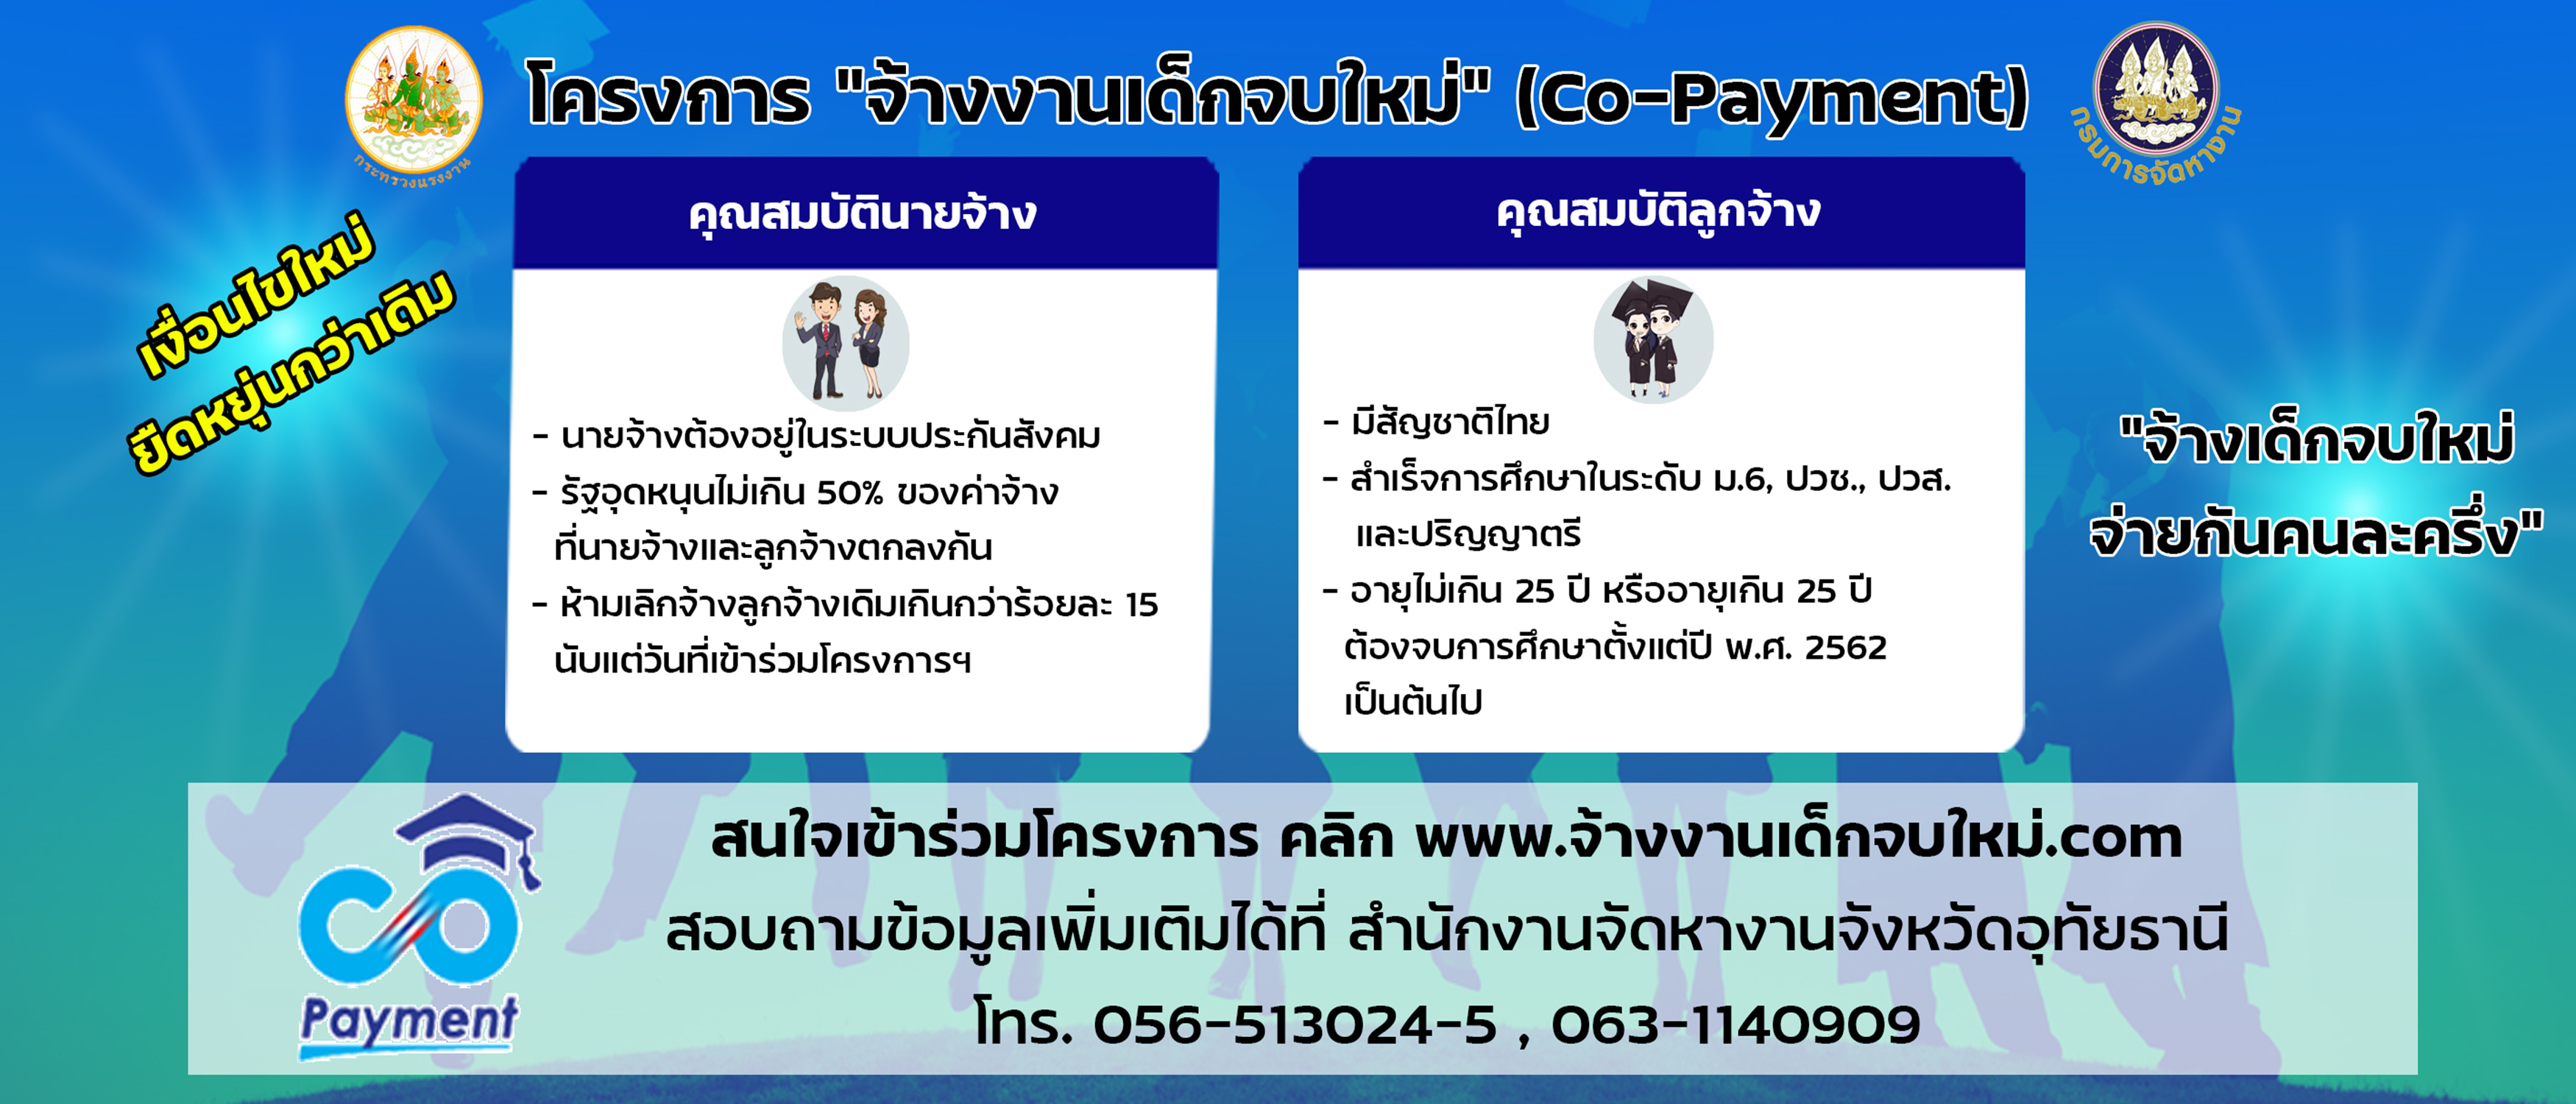 co-payment